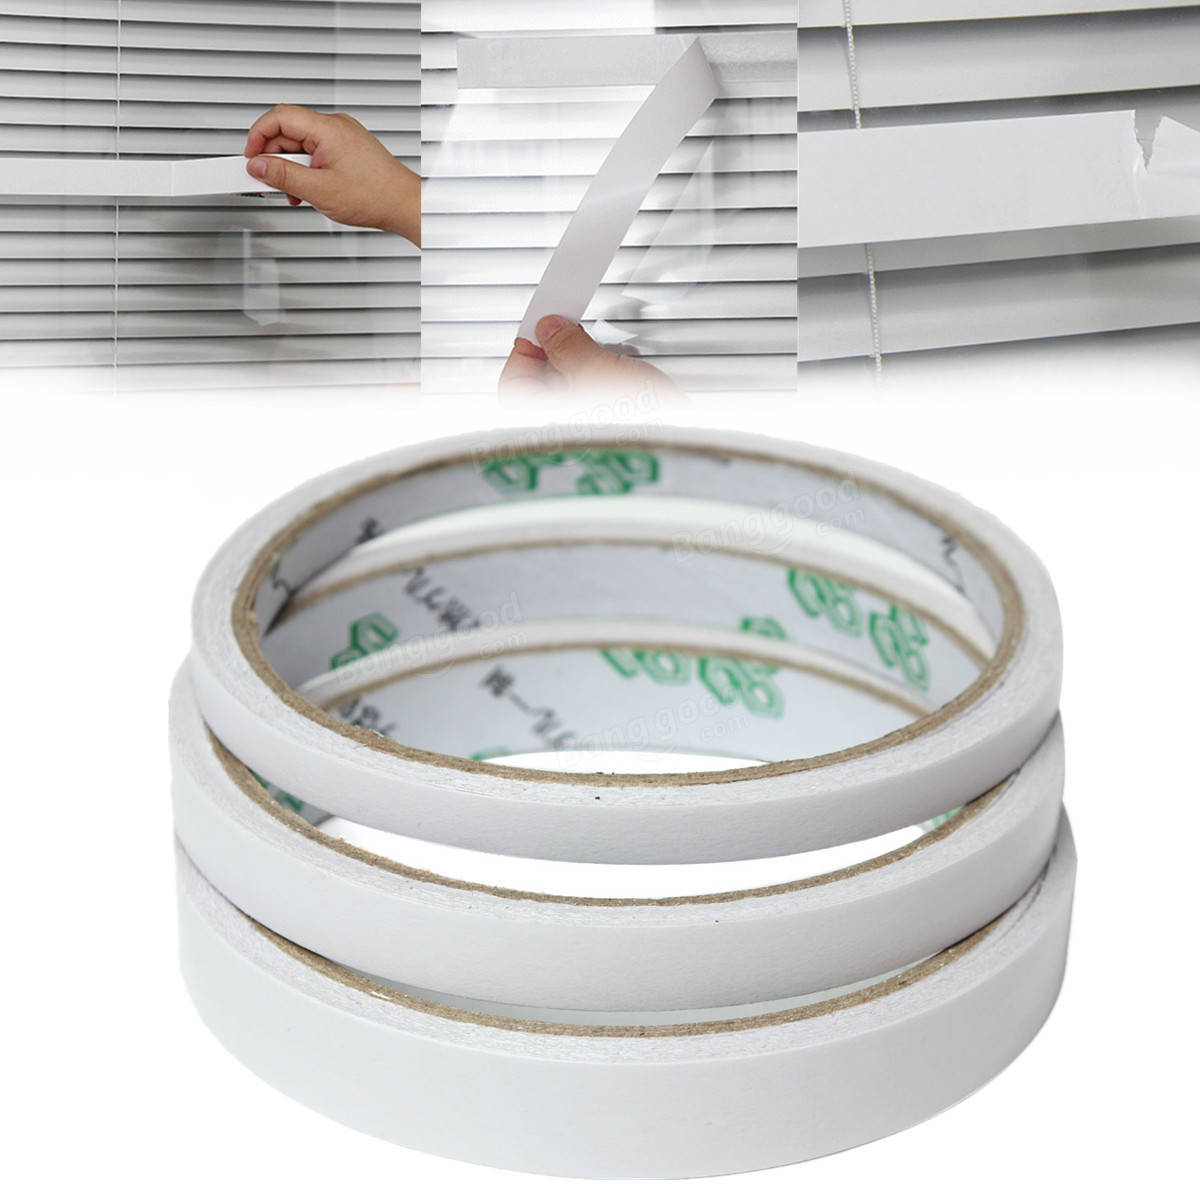 Double sided craft tape - 9m Roll Transparent Clear Double Sided Self Adhesive Tape For Craft Packaging